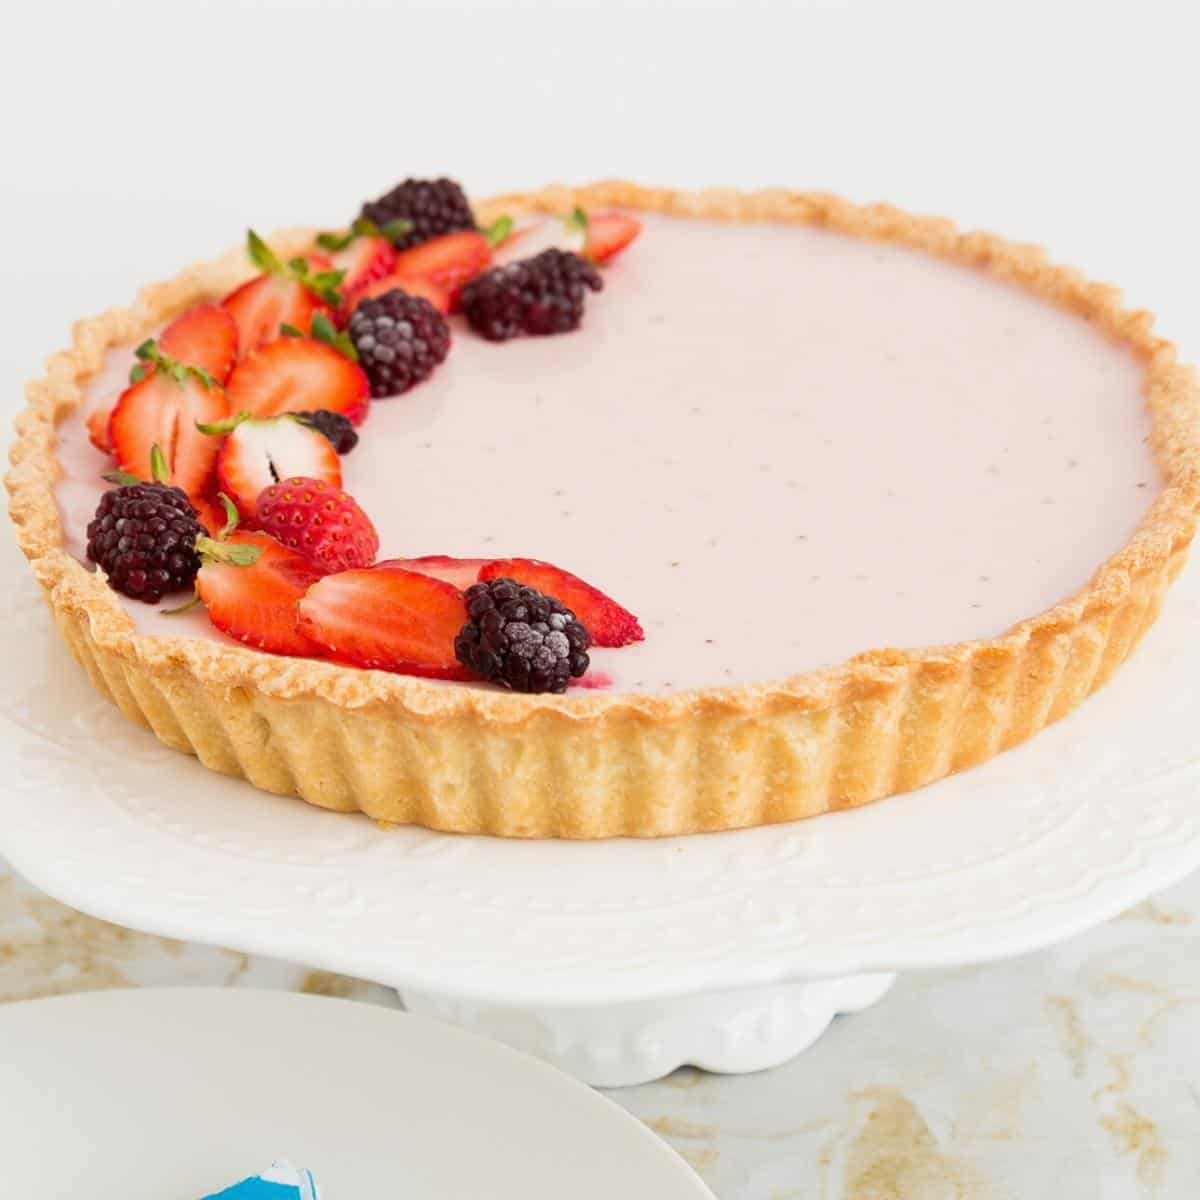 A tart with panna cotta made using strawberries